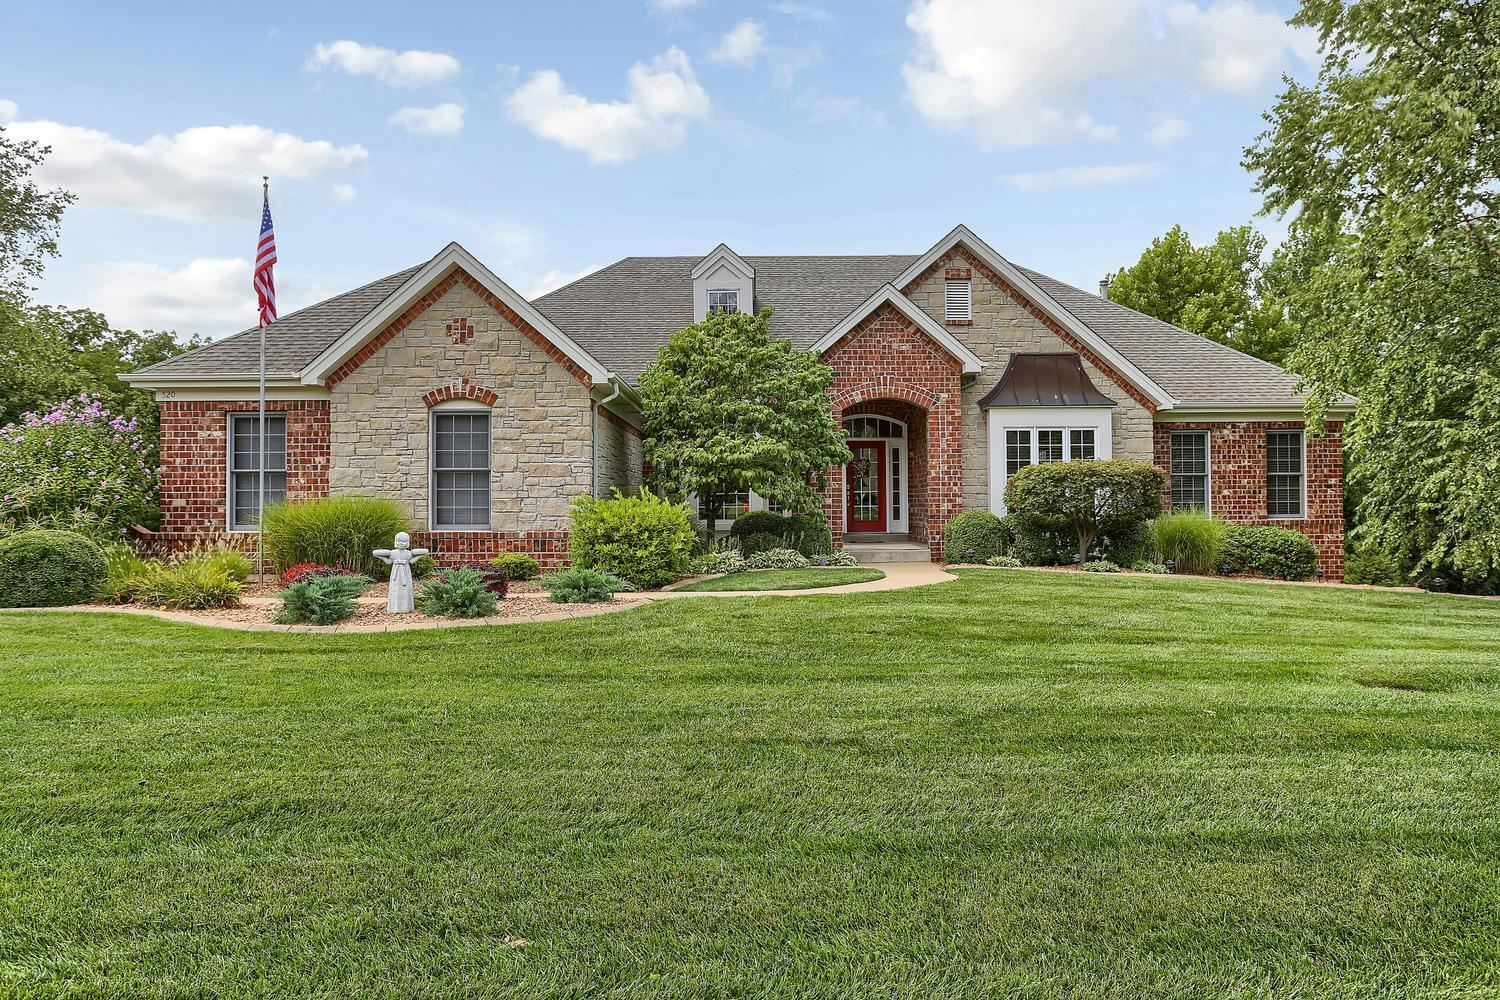 520 Forest Crest, Lake Saint Louis, MO 63367 - MLS#: 20012802